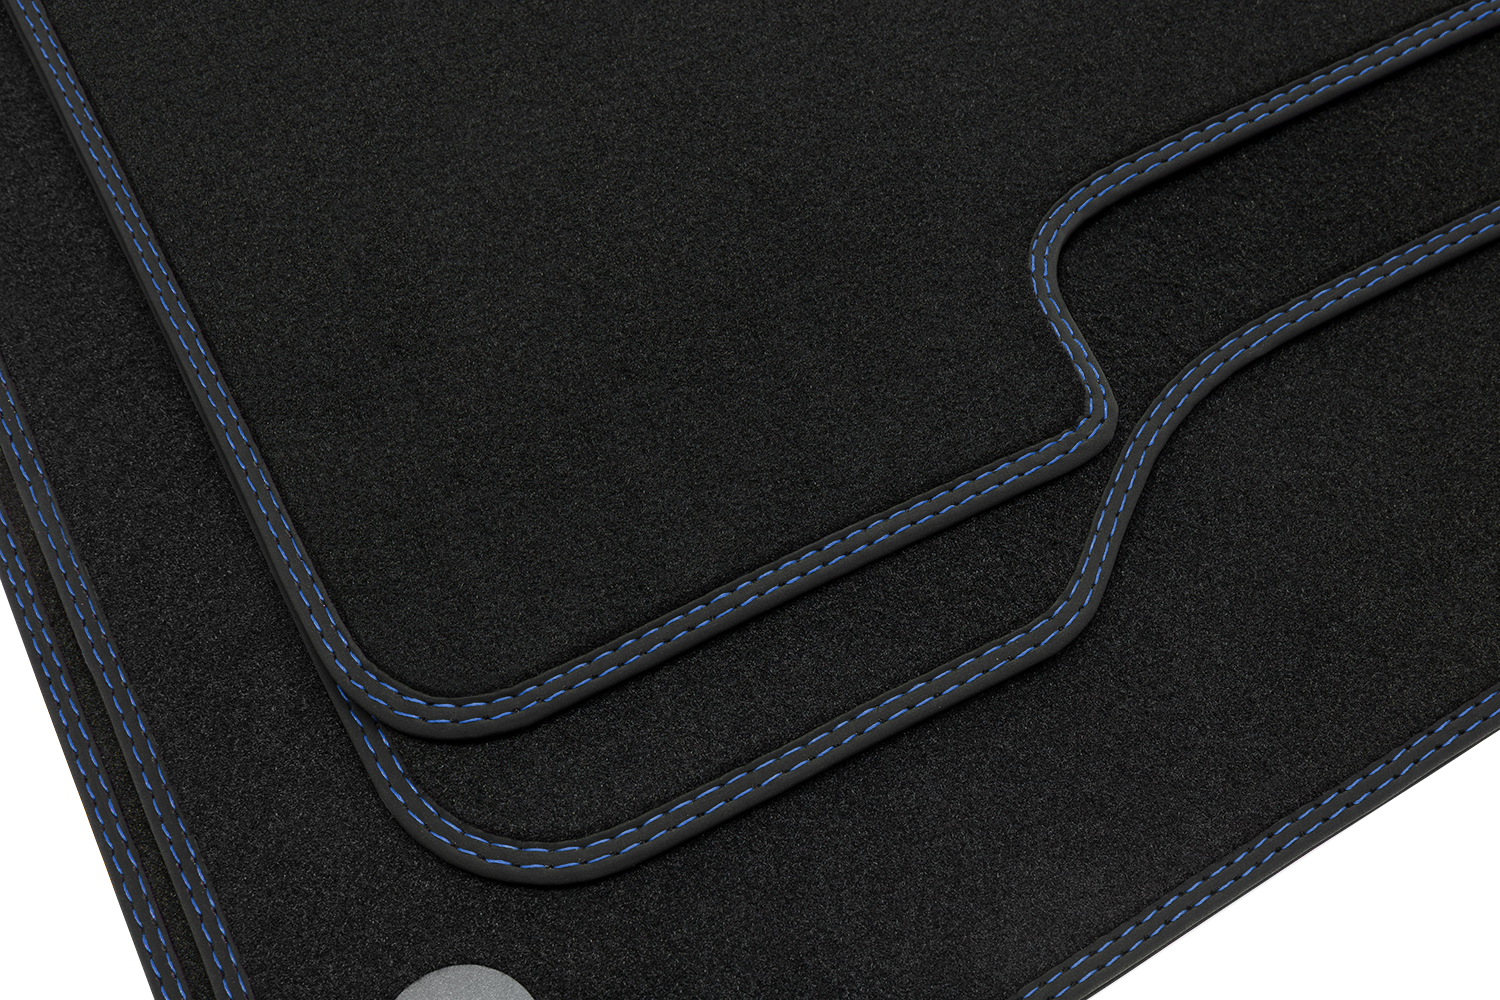 High Quality Floor Mats For Vw Polo 9n 2001 2009 L H D